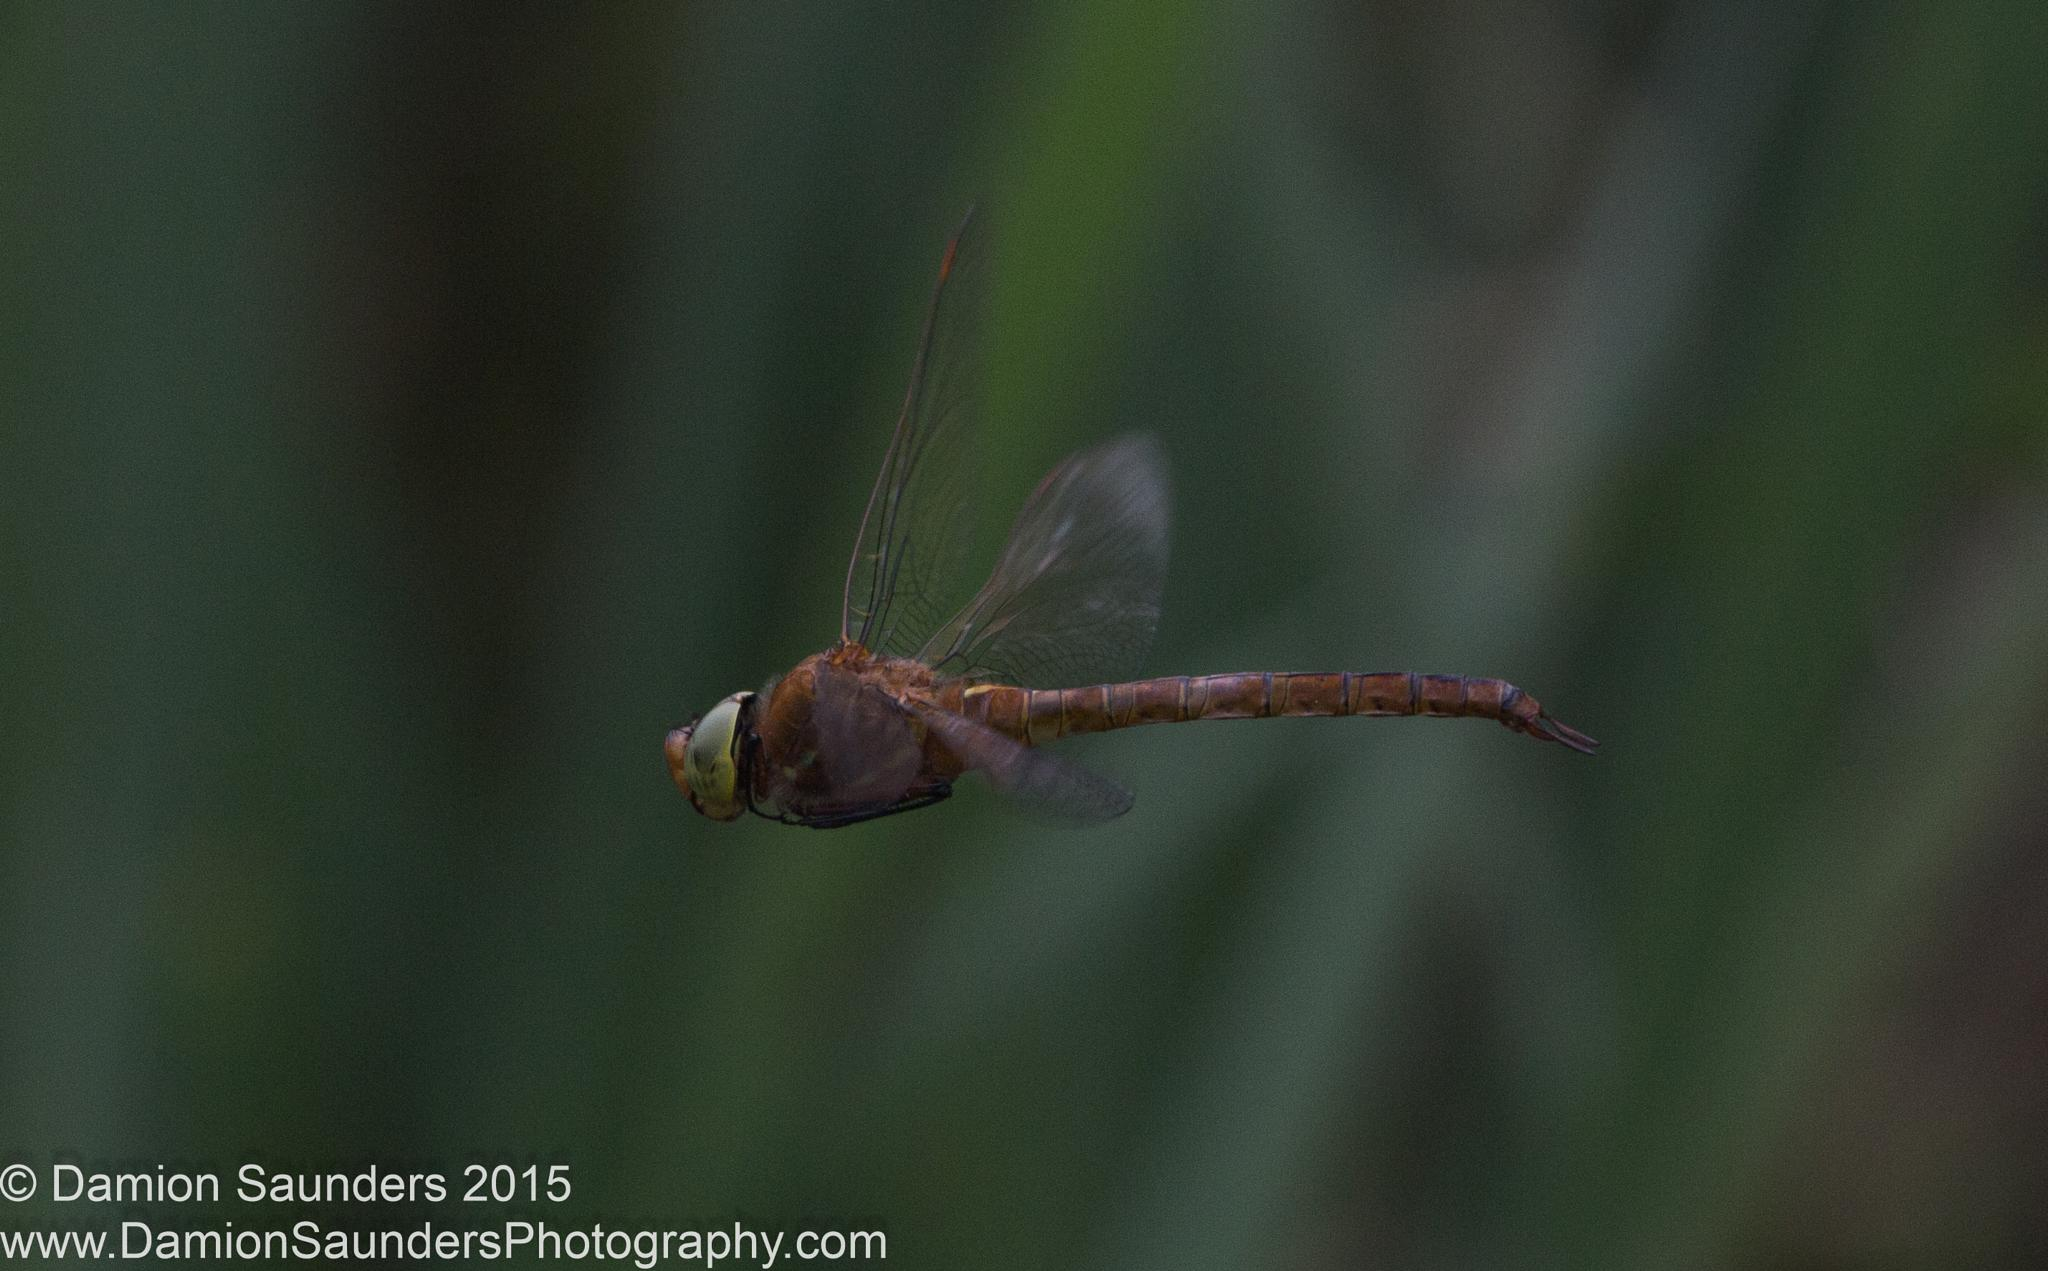 DragonFly in Flight by Damion Saunders